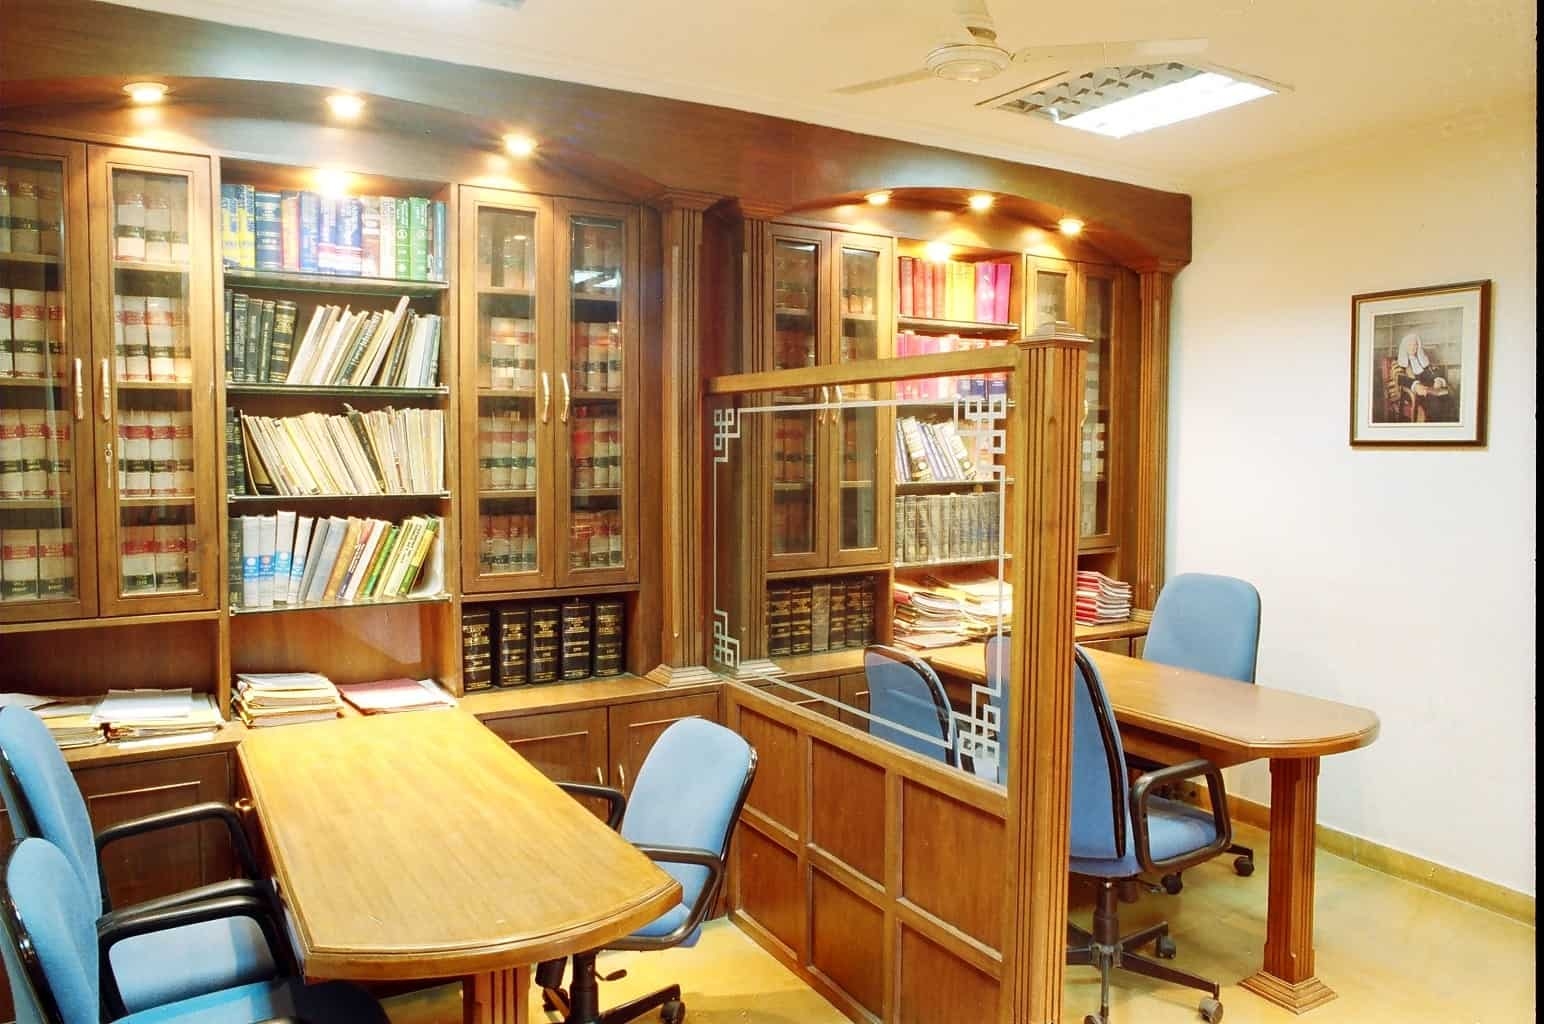 Mr. Raj Birbal's Office, Swasthya Vihar, Delhi